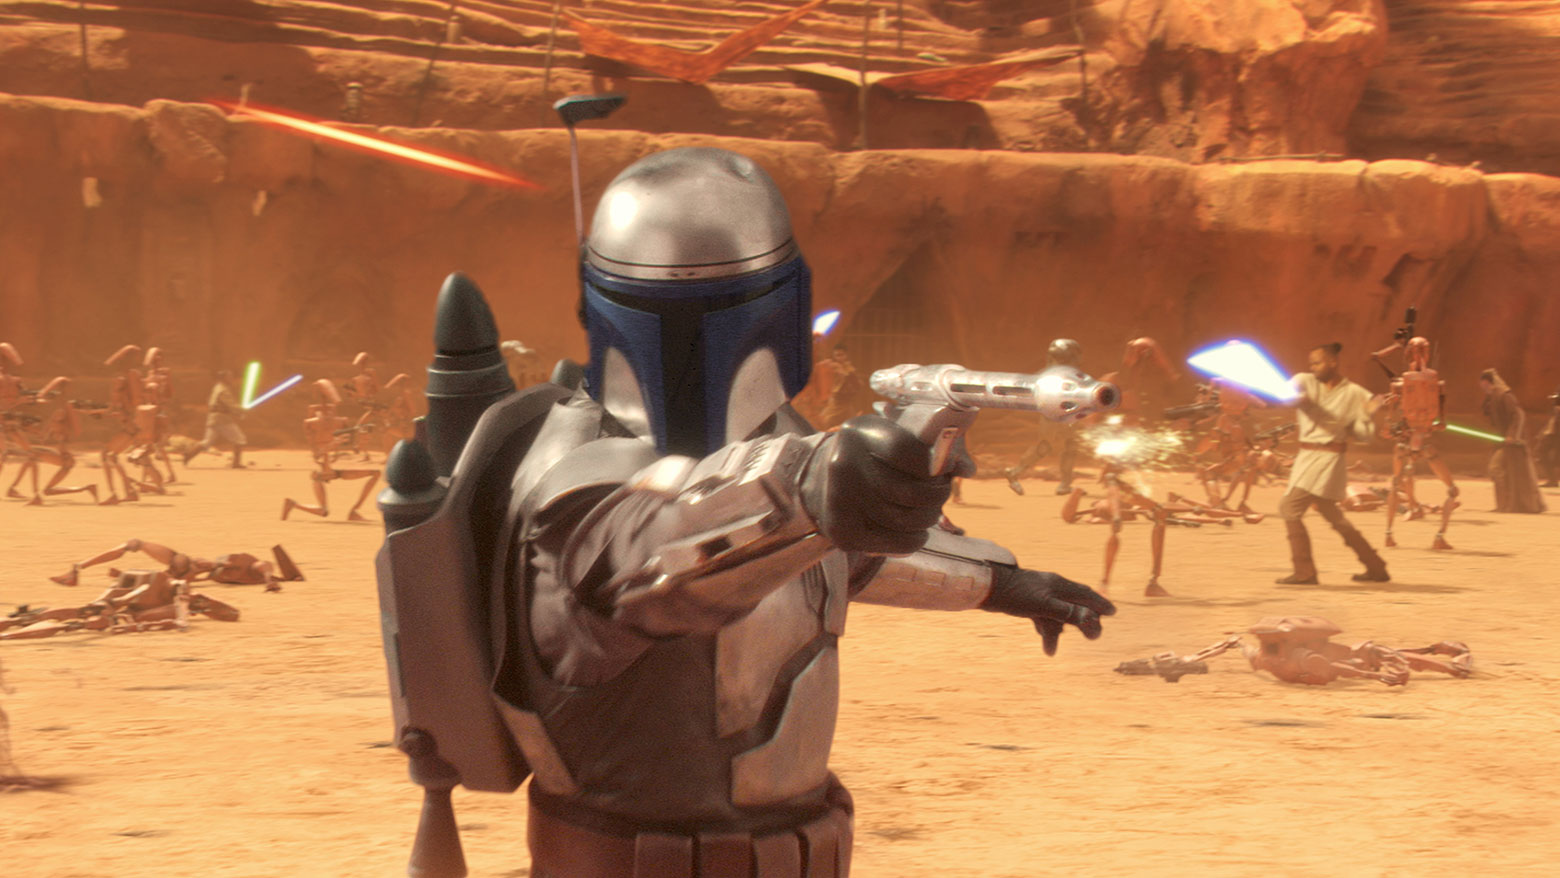 Morrison played Boba Fett's father Jango all the way back in The Attack of the Clones in 2002.